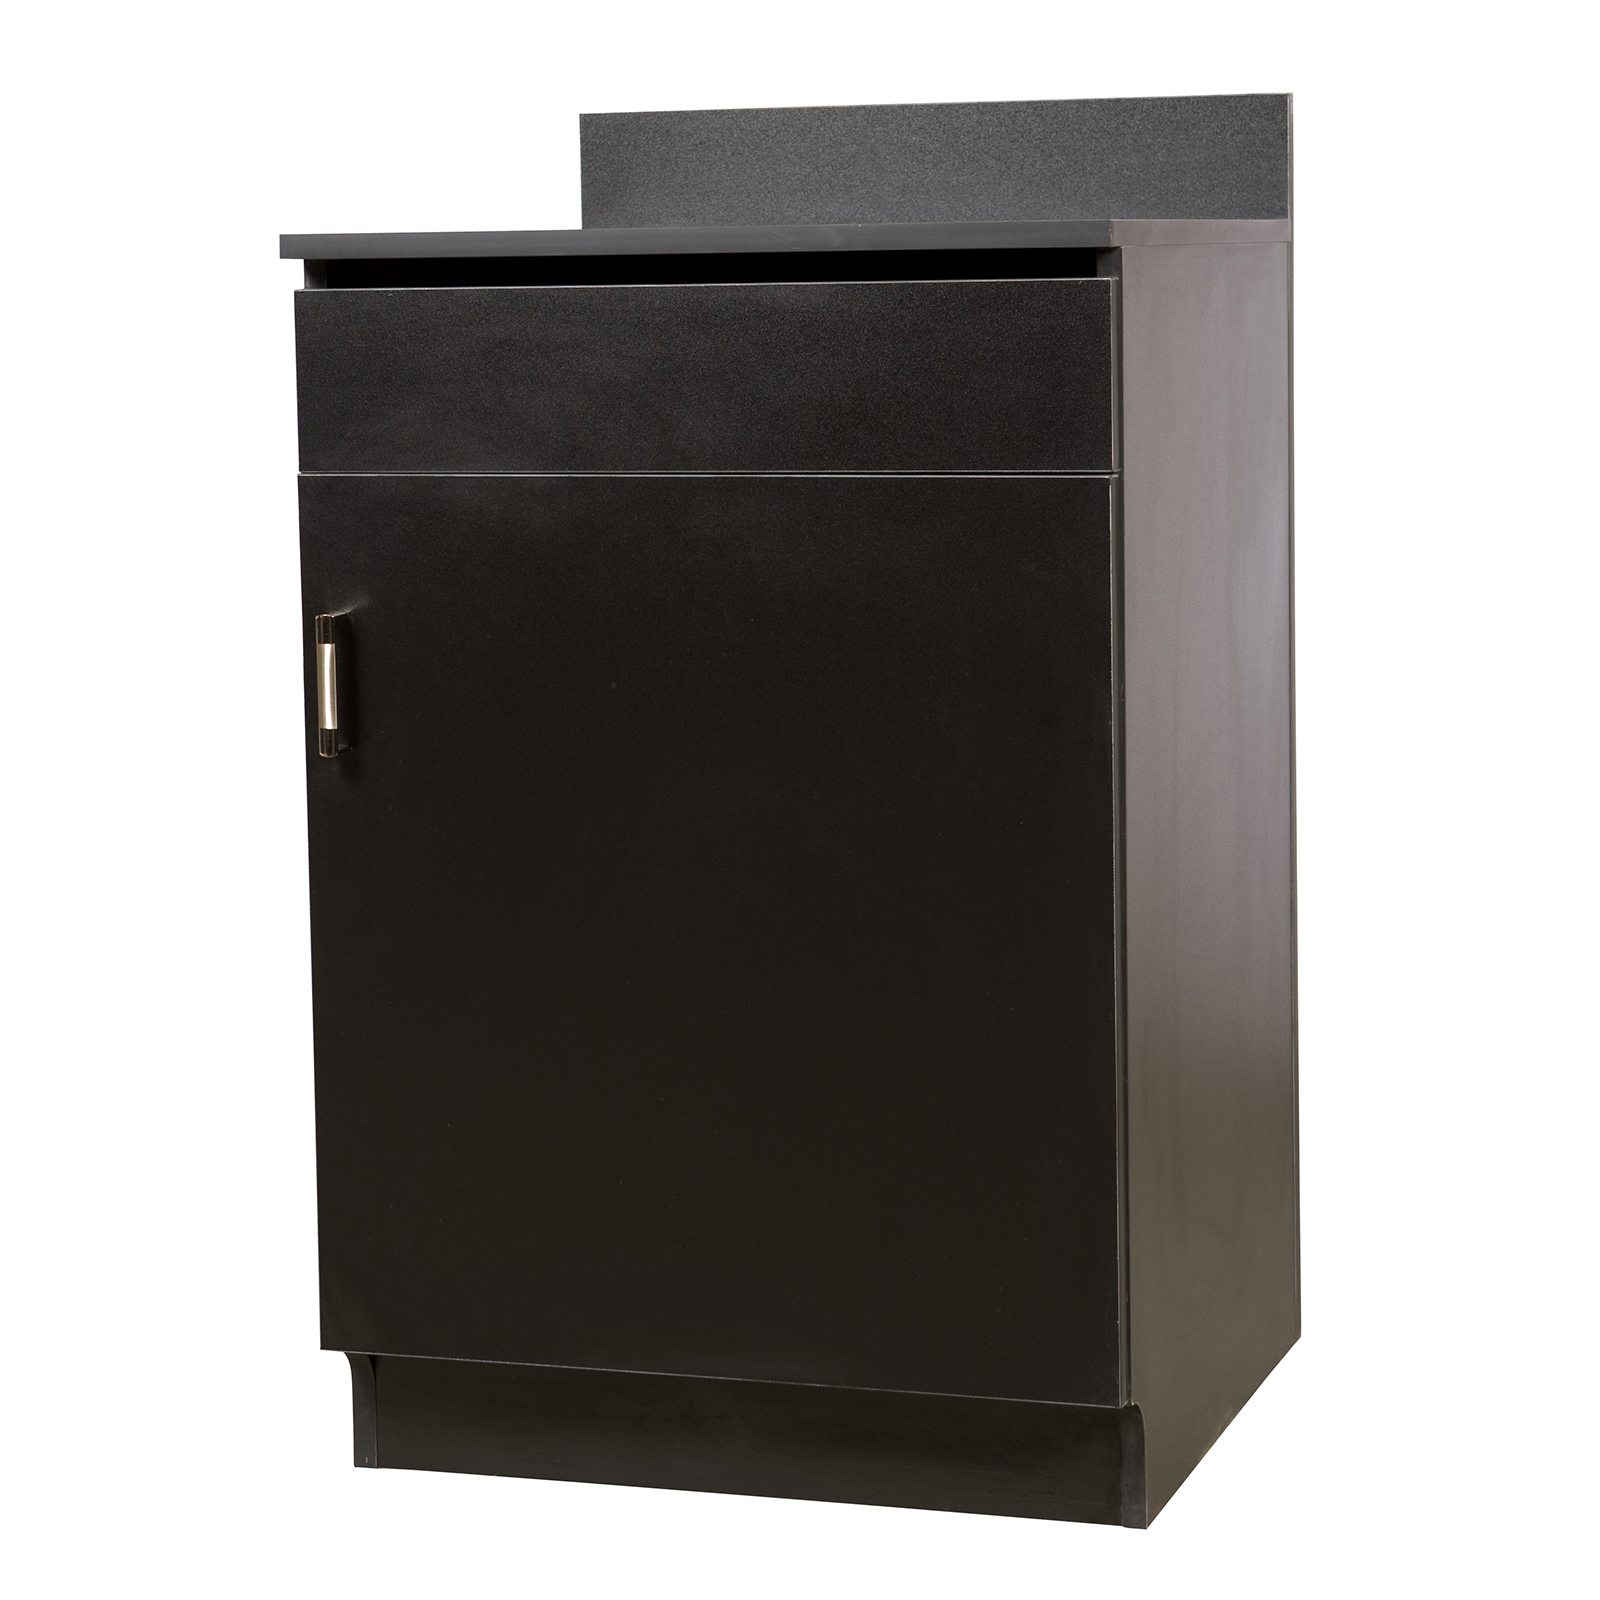 Oak Street M8210-BLK-UNASSEMBLED wait station cabinet